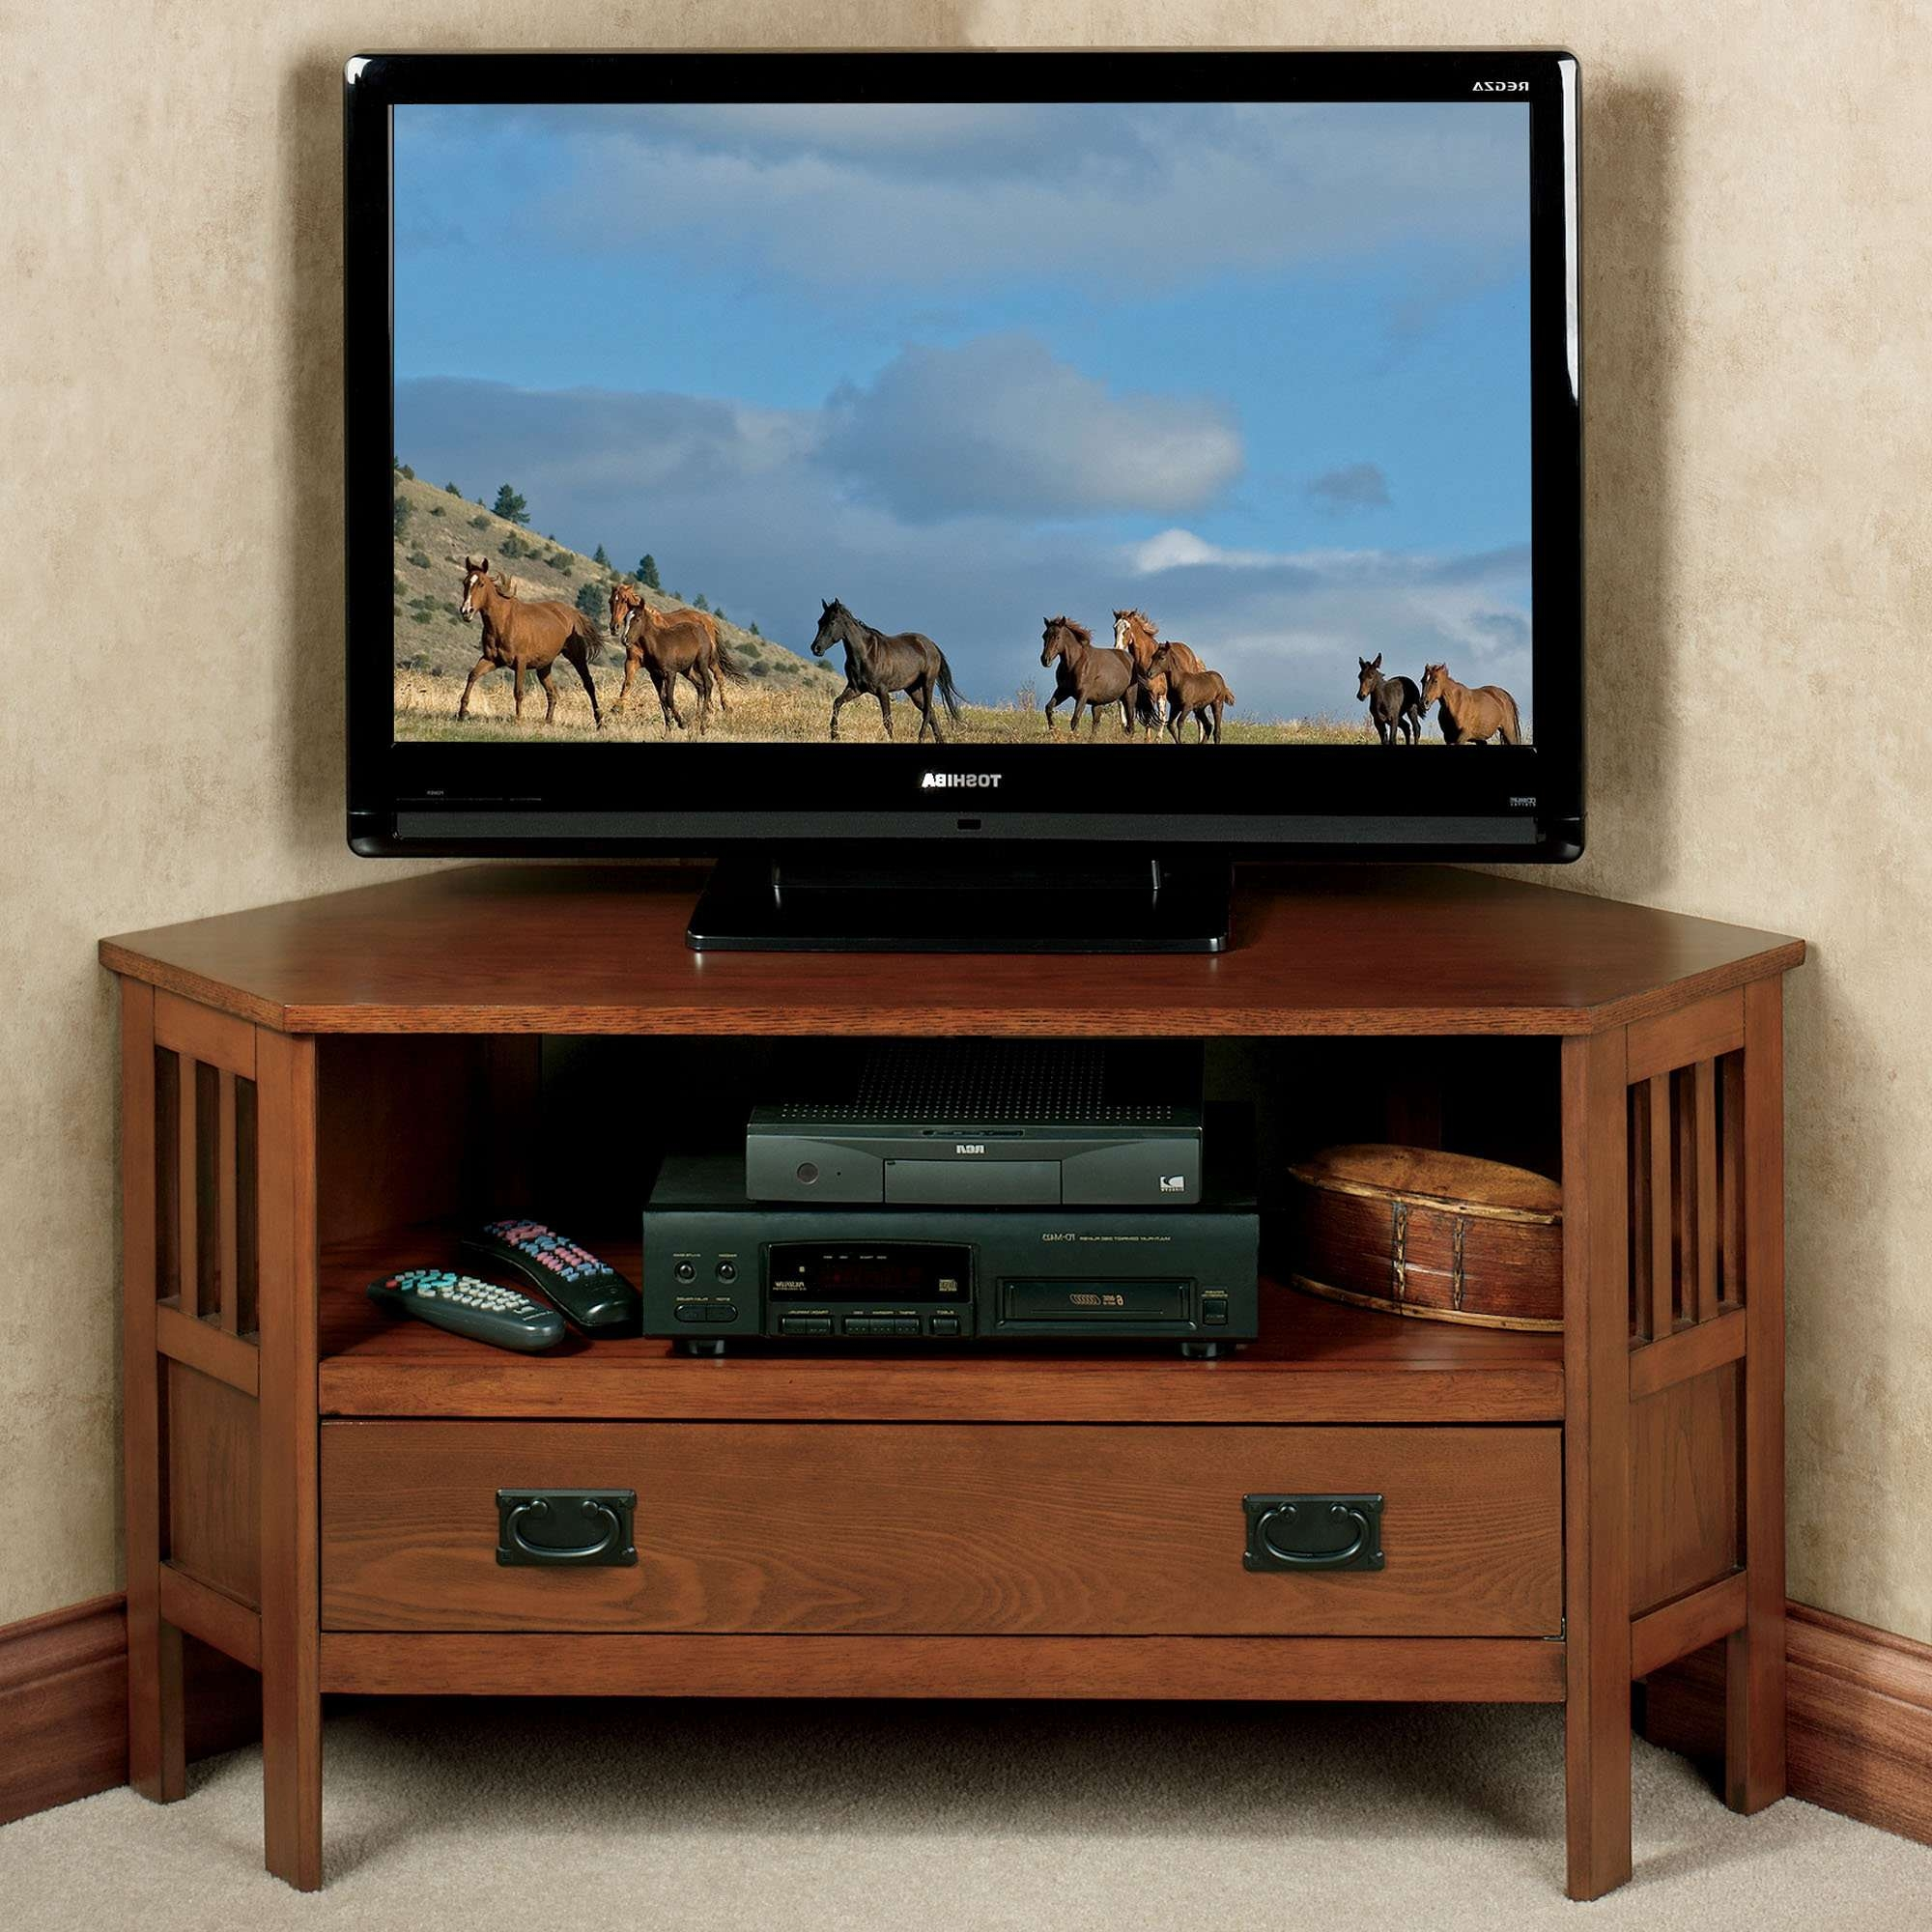 Fresh Corner Tv Stand For 55 Inch Flat Screen 78 With Additional Pertaining To Corner Tv Stands For 55 Inch Tv (View 5 of 15)